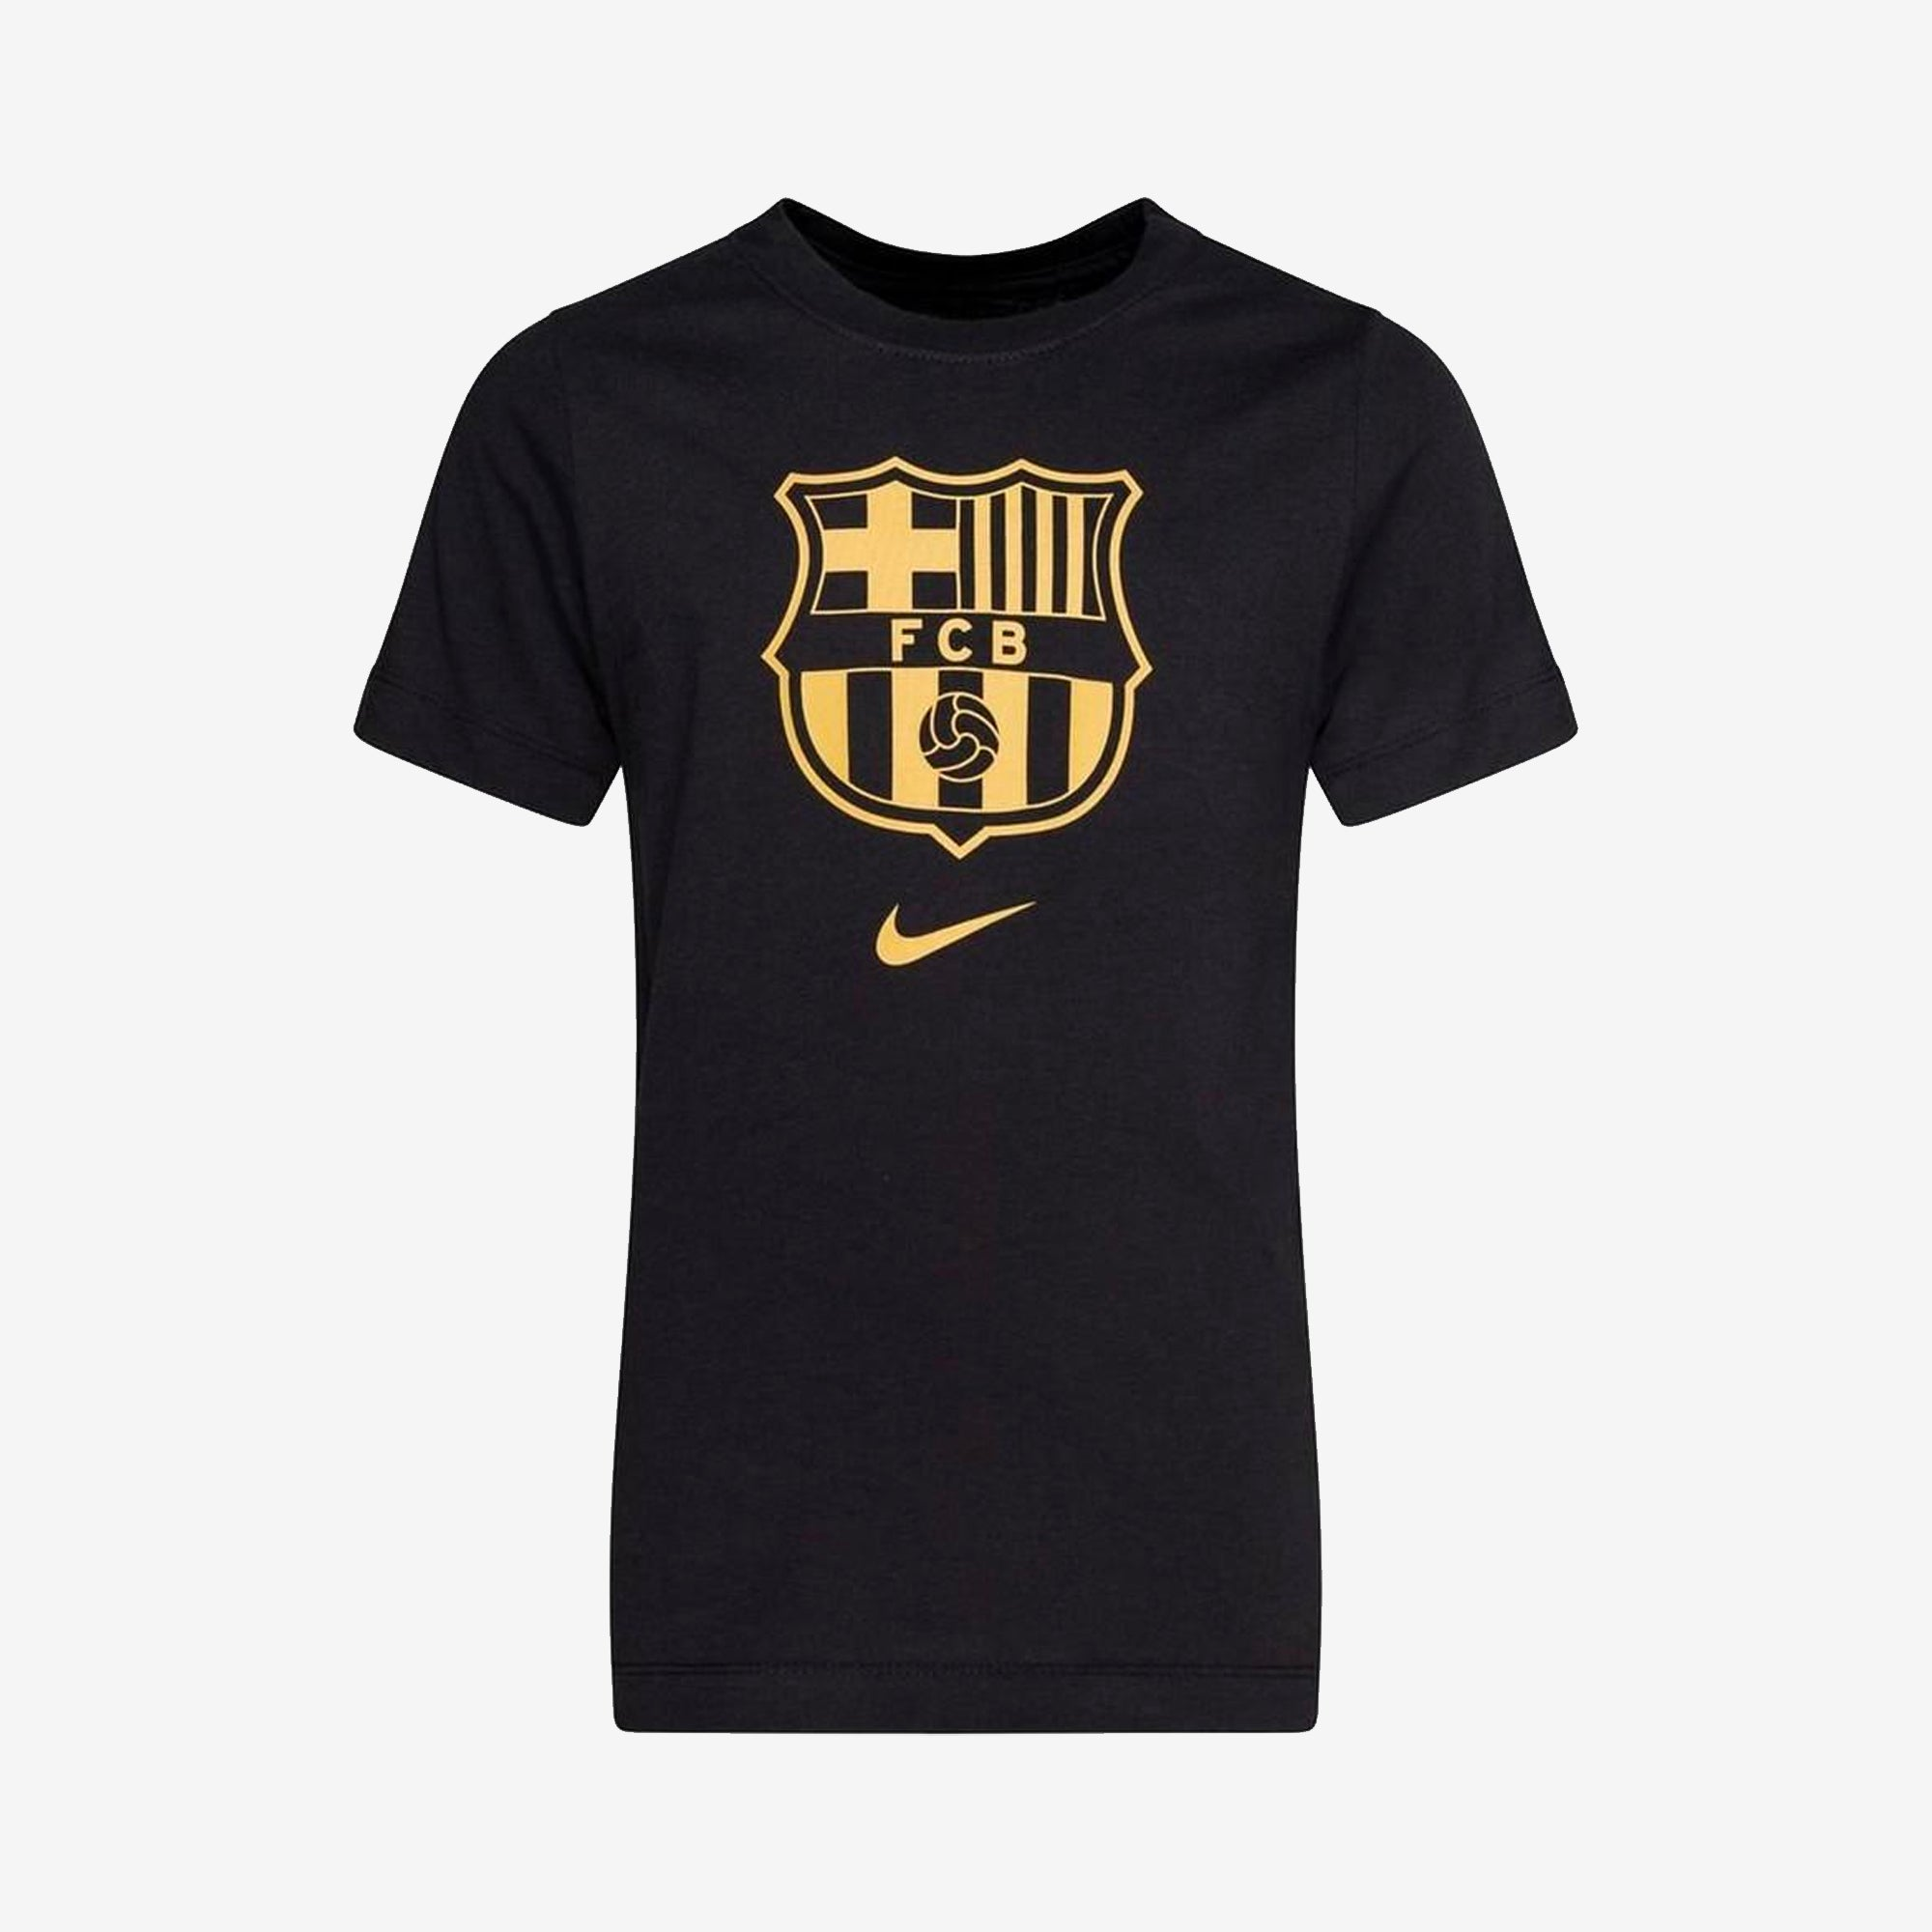 FC Barcelona 20/21 Crest Youth T-Shirt - Black